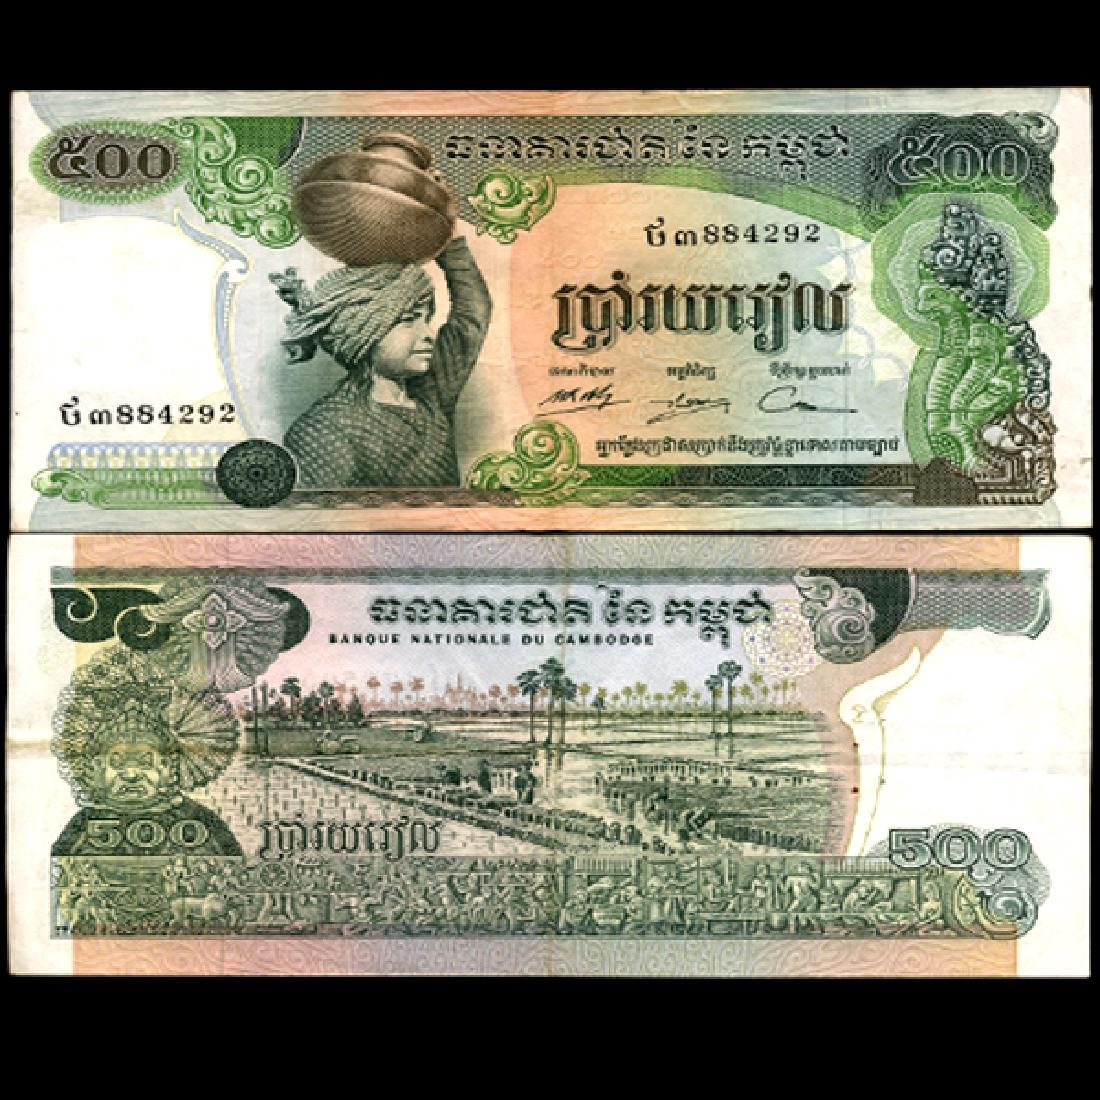 1973 Cambodia 500 Reils Note Better Circulated